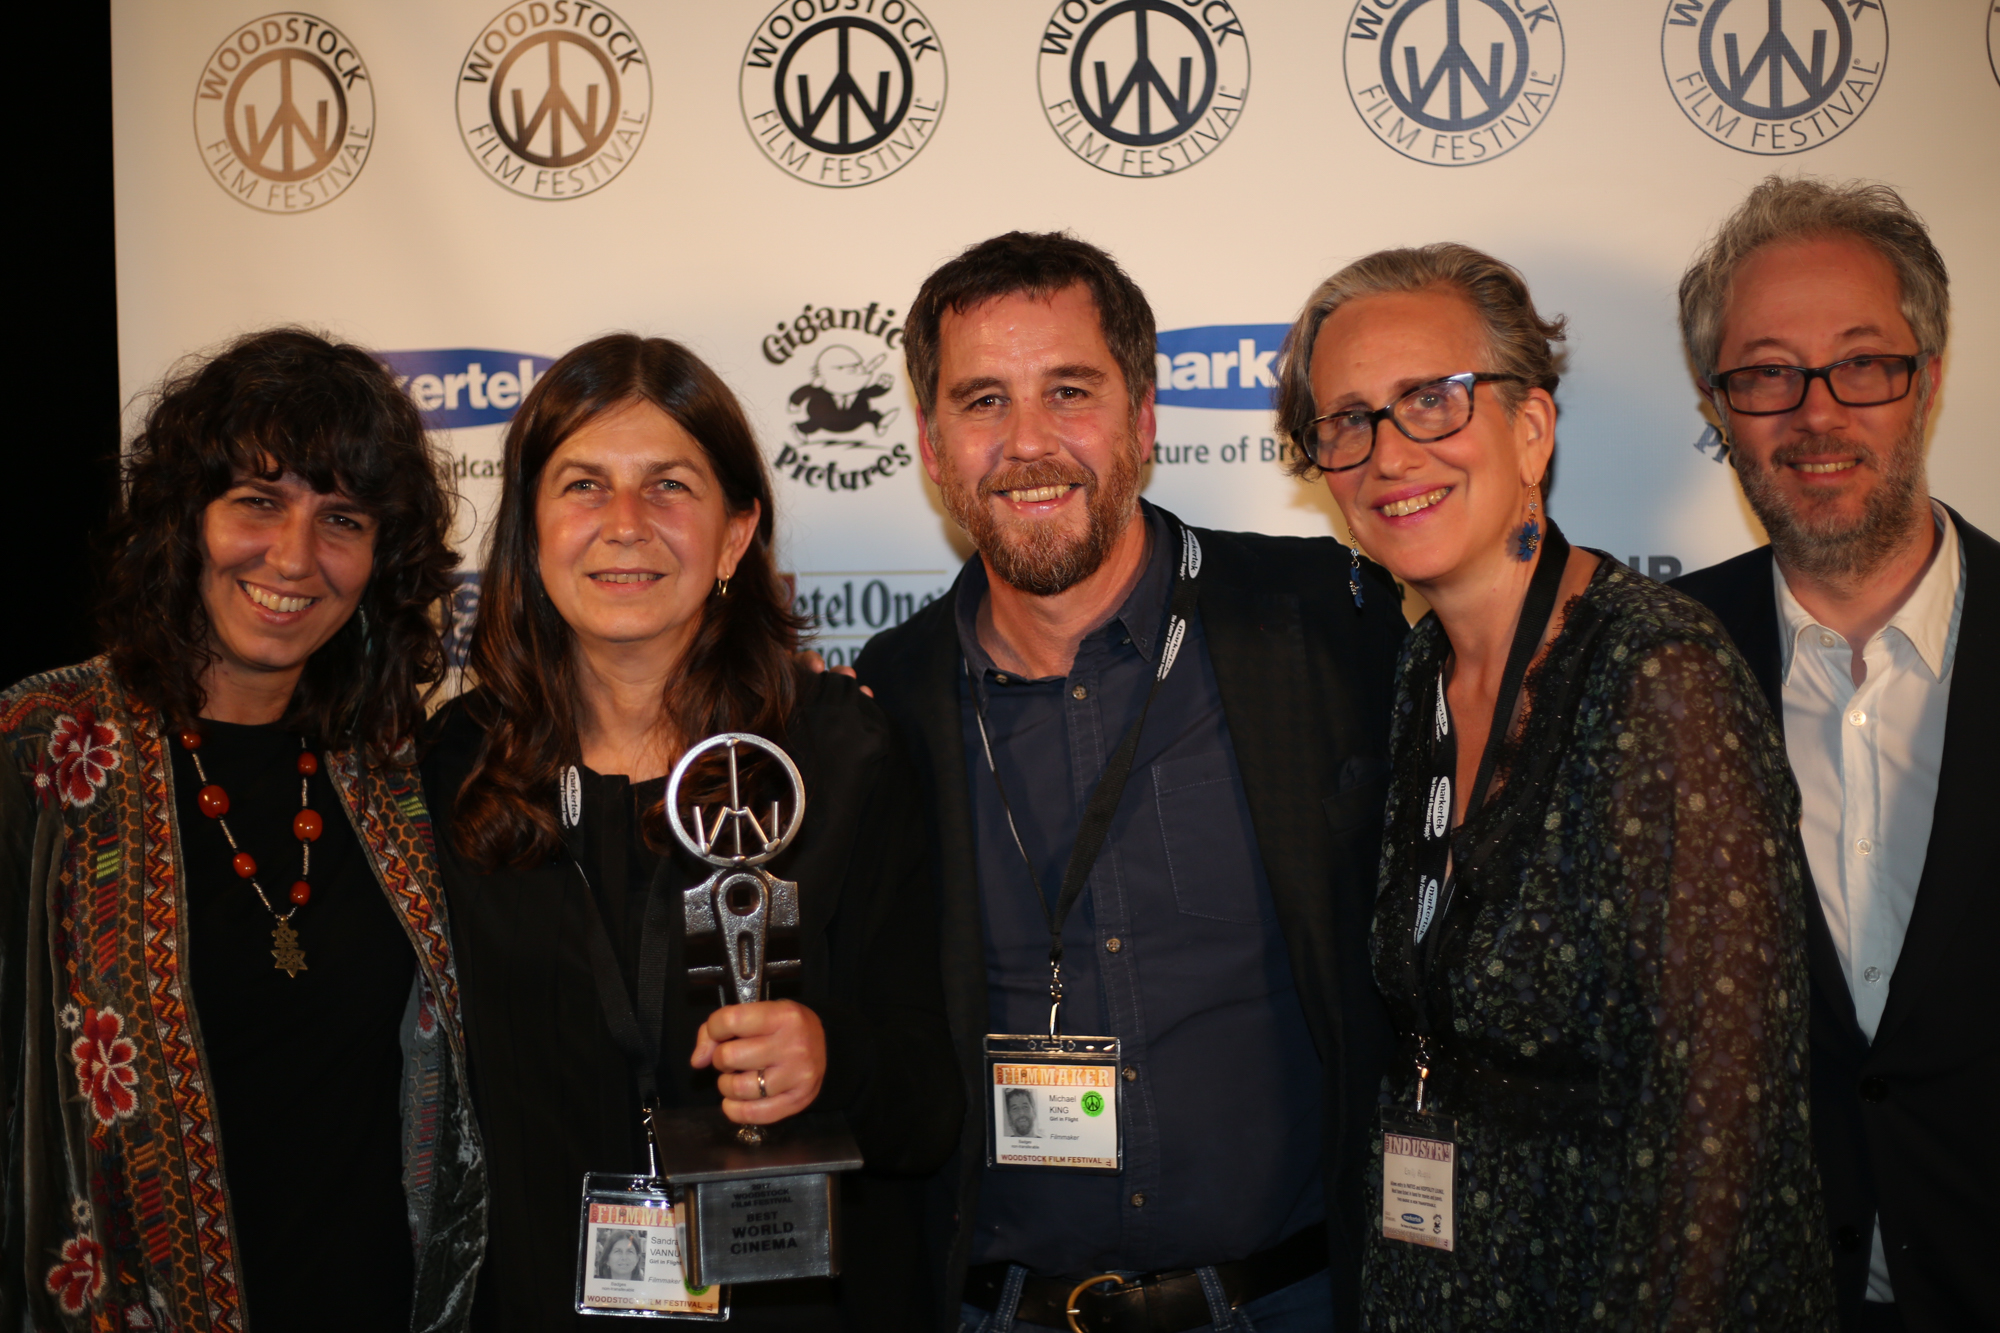 Maria Govin, Sandra Vannuchi, Michael King, Emily Russo, and Claude dal Farra. GIRL IN FLIGHT won the World Cinema Award